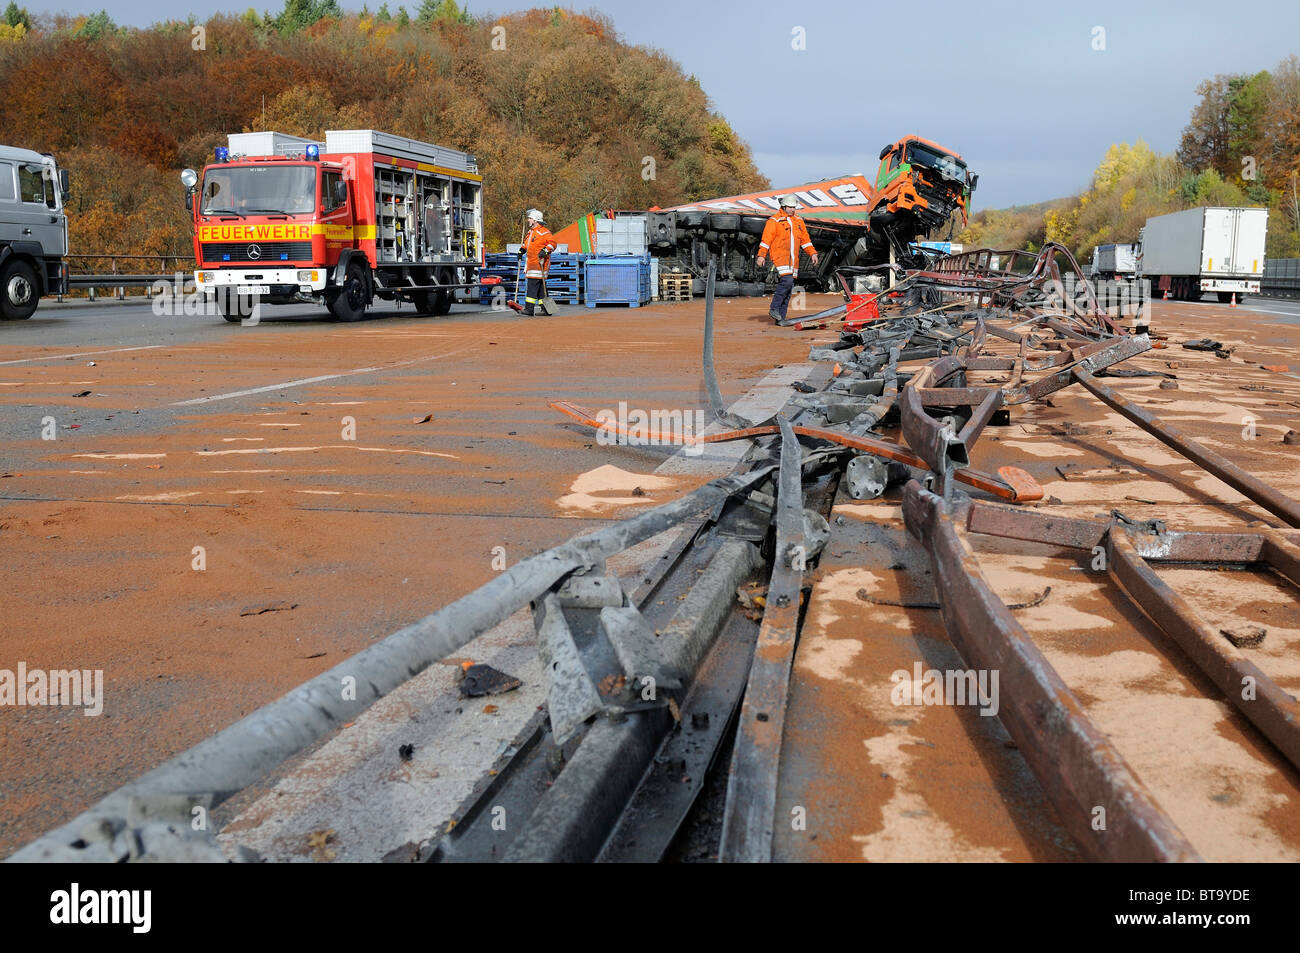 Autobahn A8 Stock Photos & Autobahn A8 Stock Images - Alamy